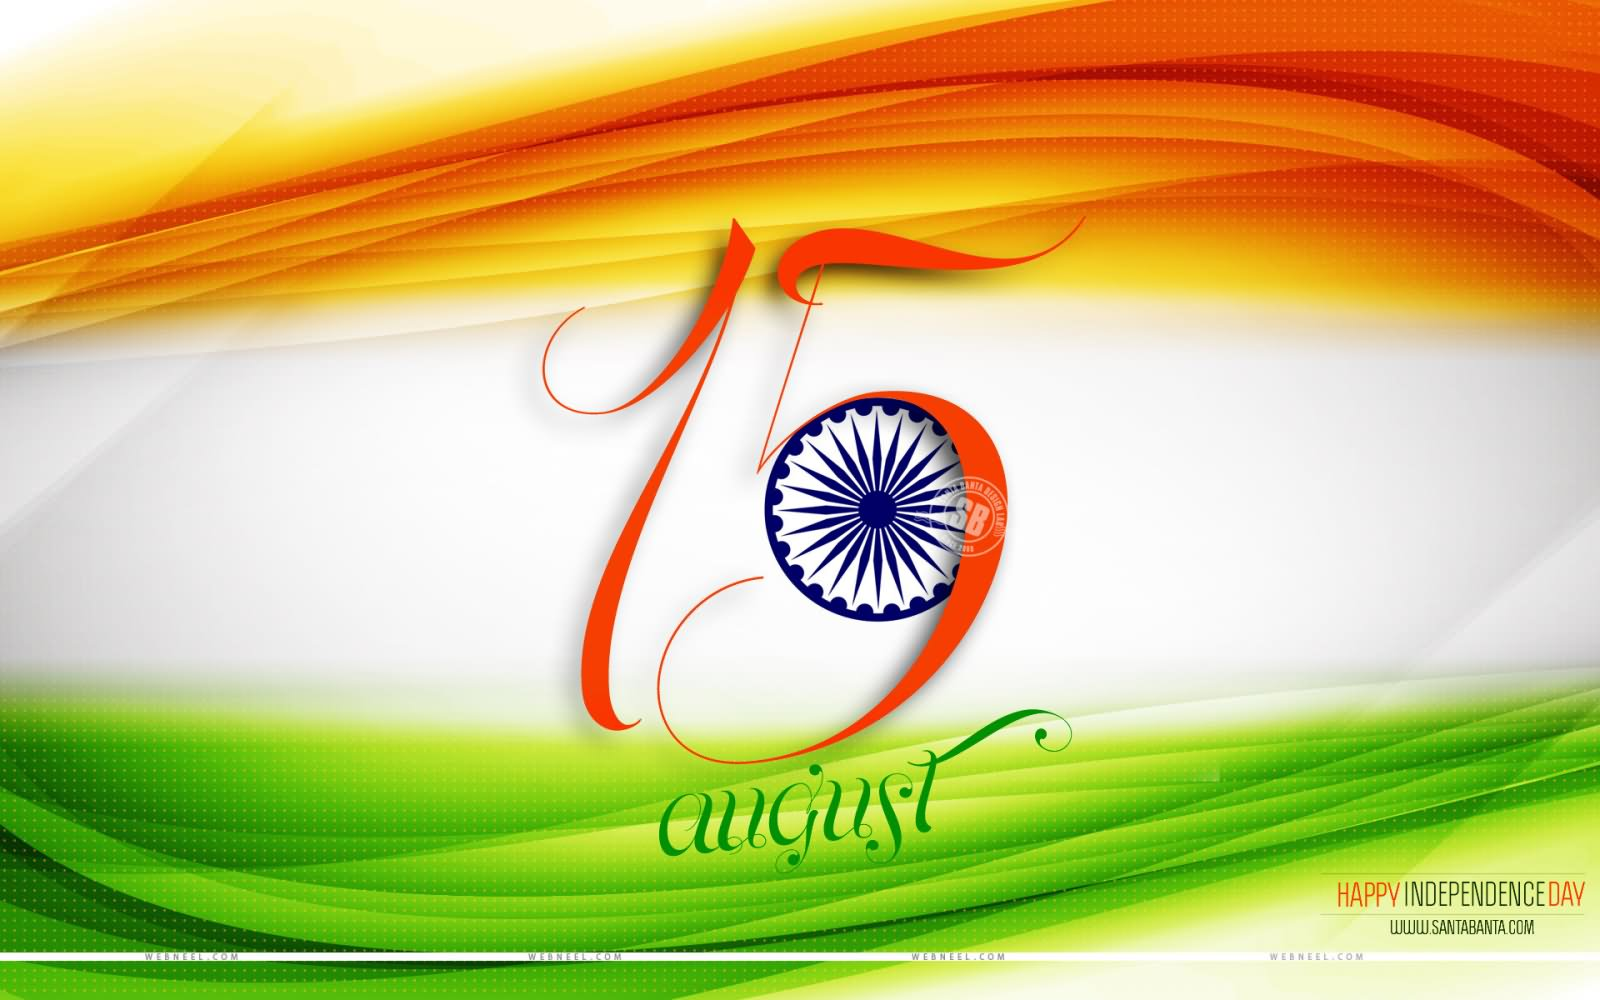 15 august happy independence day wallpaper